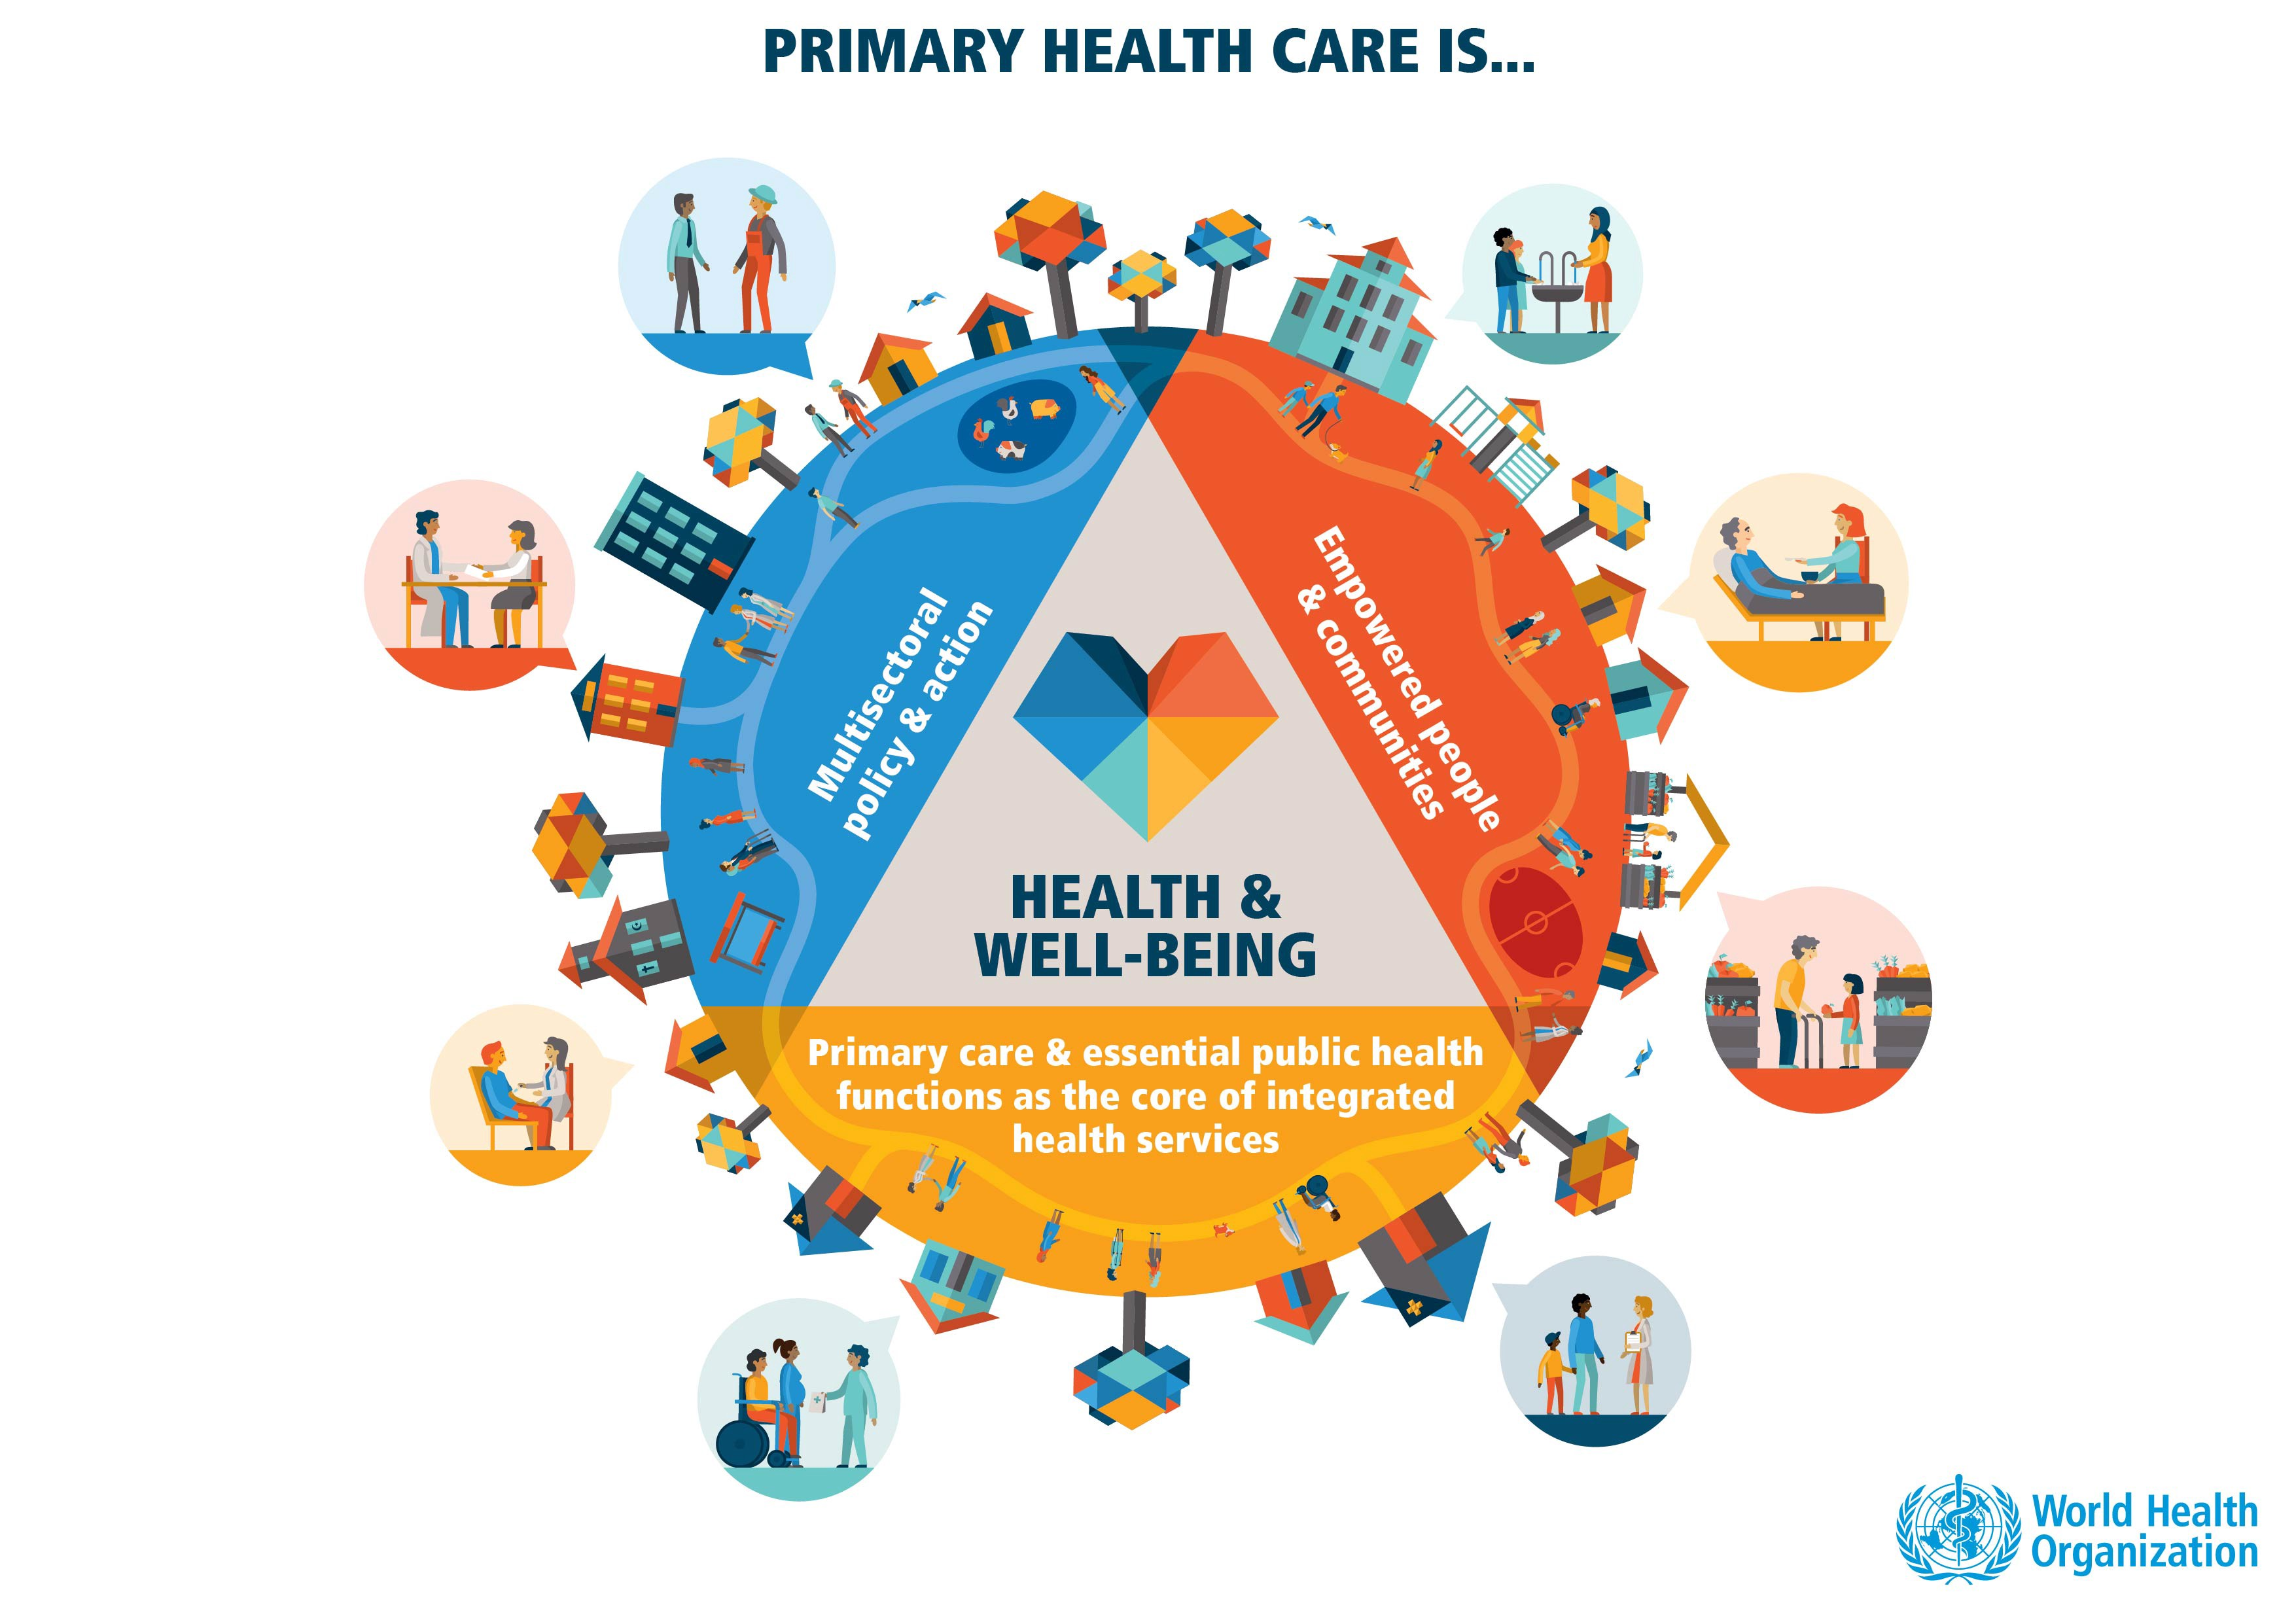 Primary Health Care according to WHO: I. Multi-sectorial policy & action, II. Empowerment, III. Integrated health services